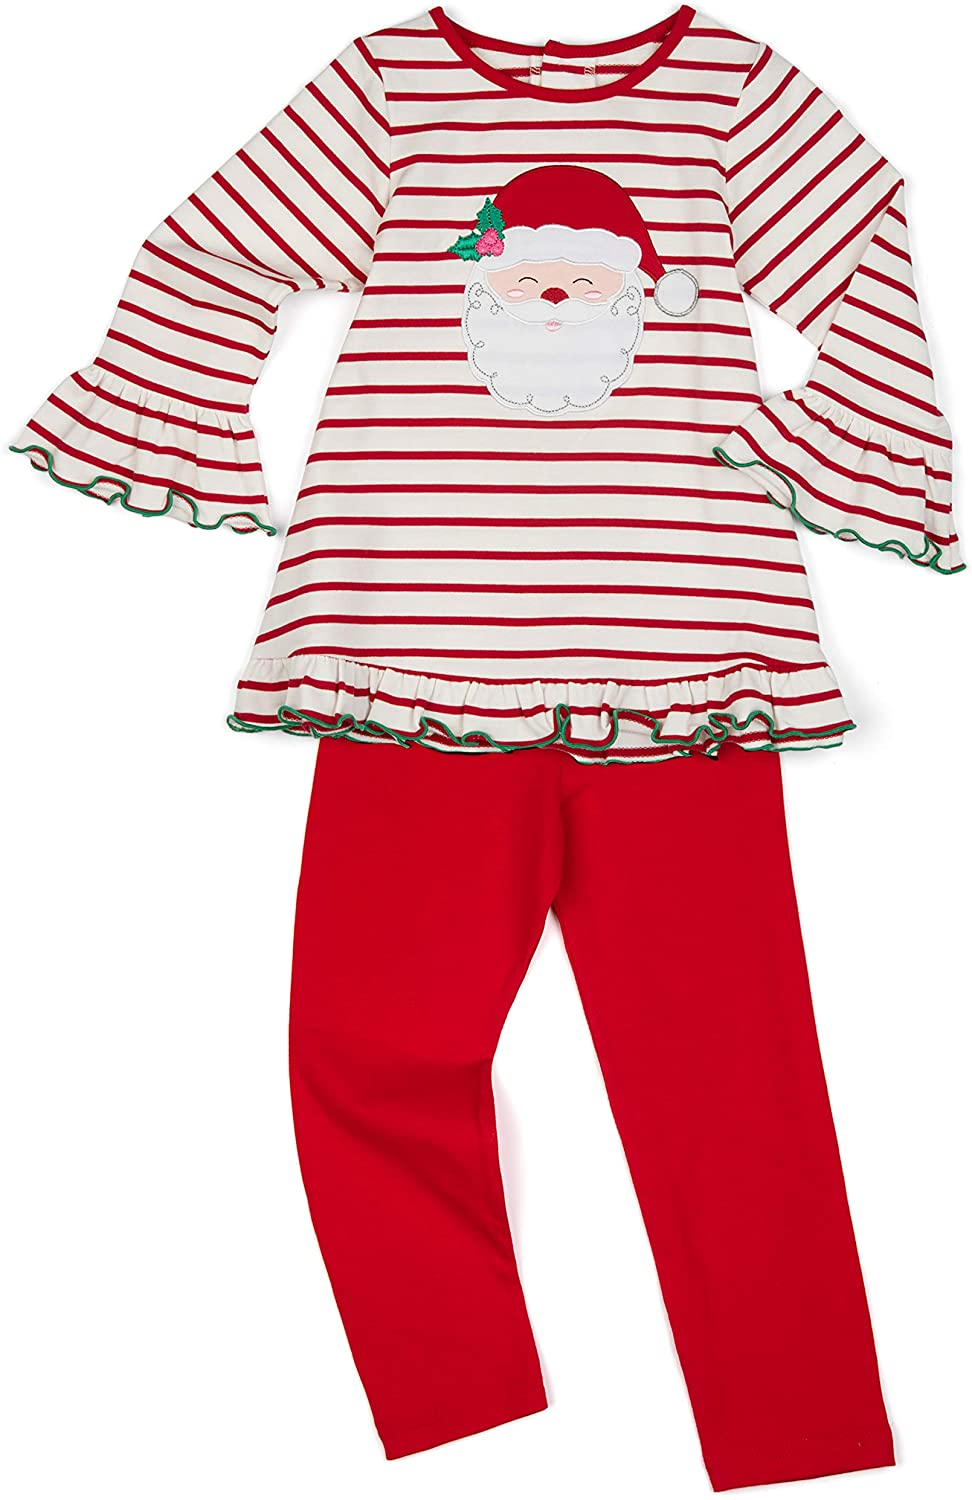 Good Lad Toddler Thru 4/6X Girls Red and White Striped Knit Top with Santa Applique Legging Set